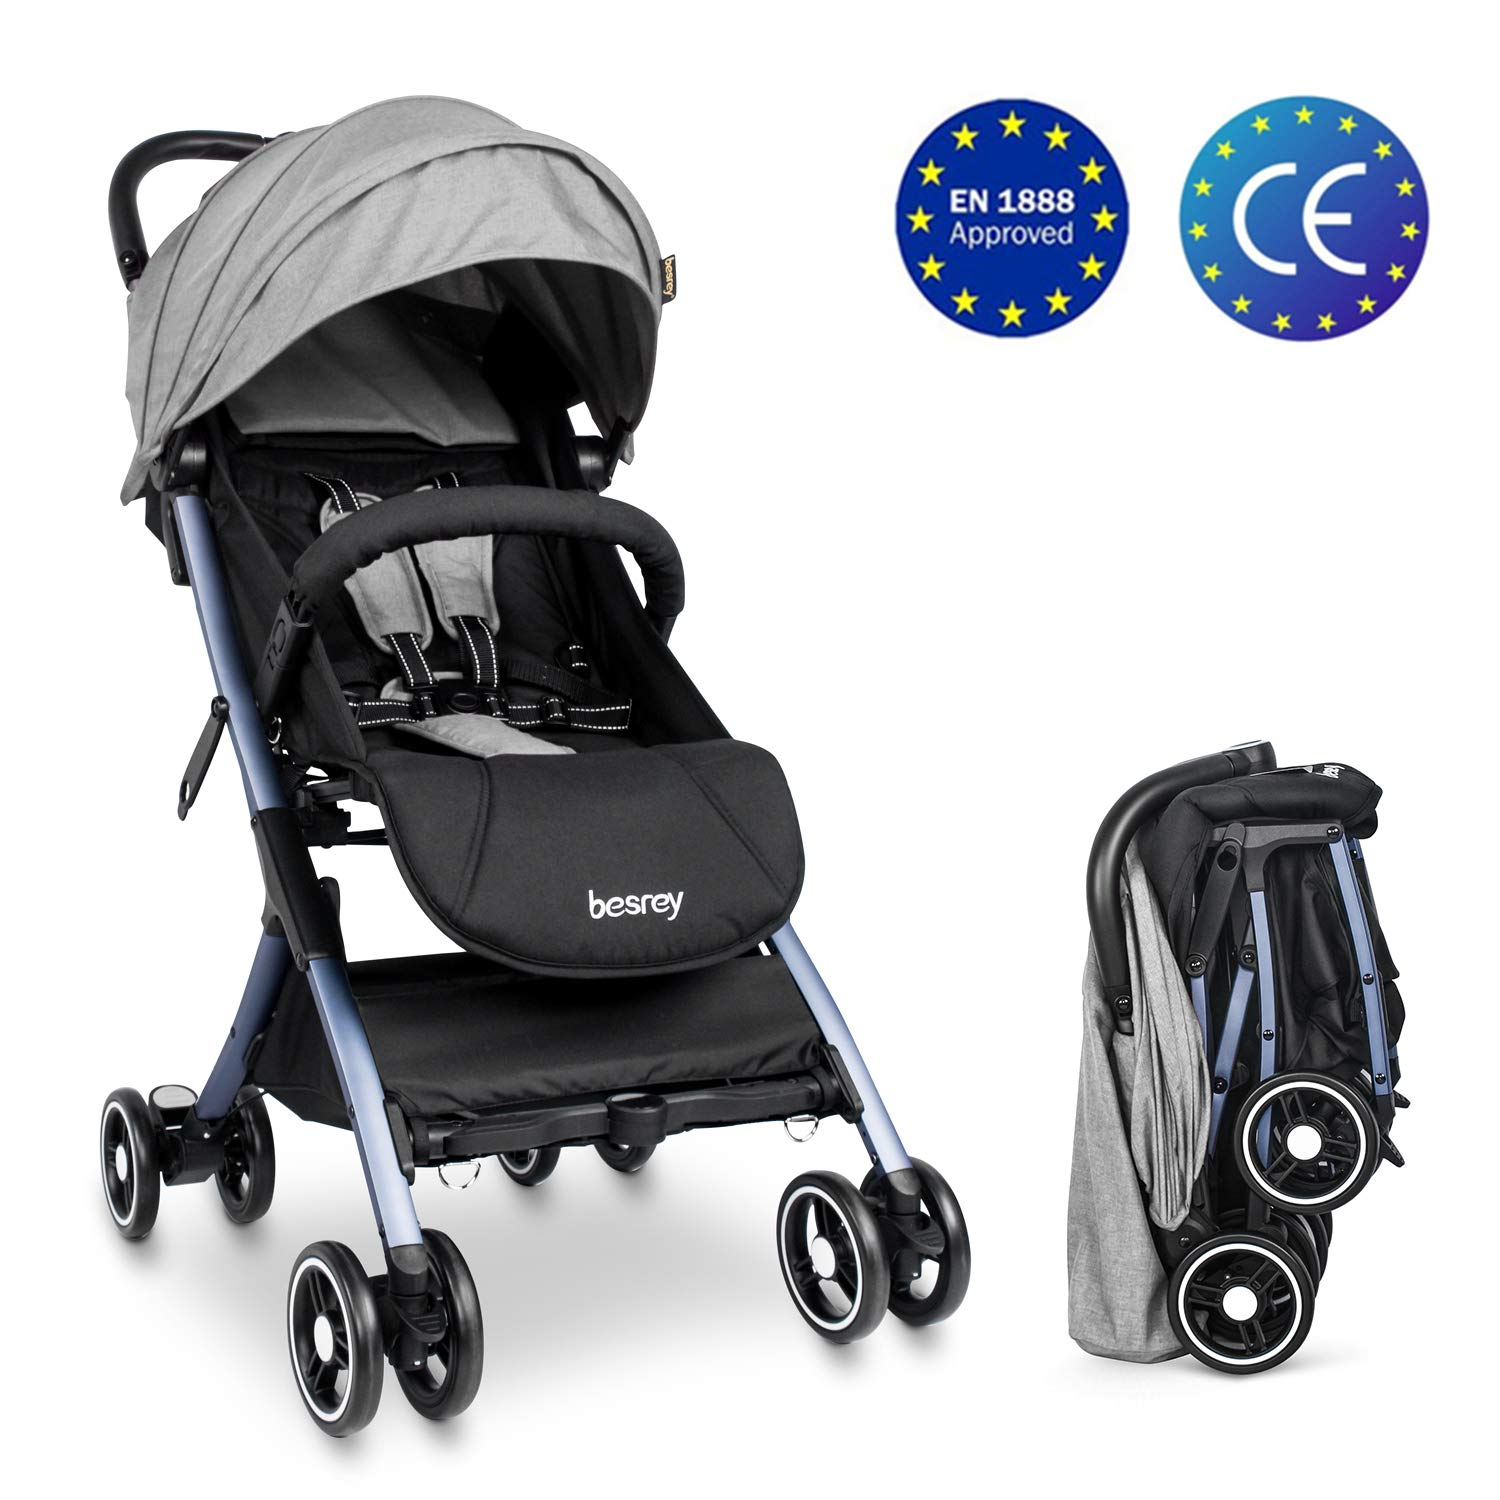 Lightweight Stroller Buggy Besrey Travel Buggy With Reclinable Backseat Easy One Hand Fold Compact Airplane Stroller Gray 0 36 Months